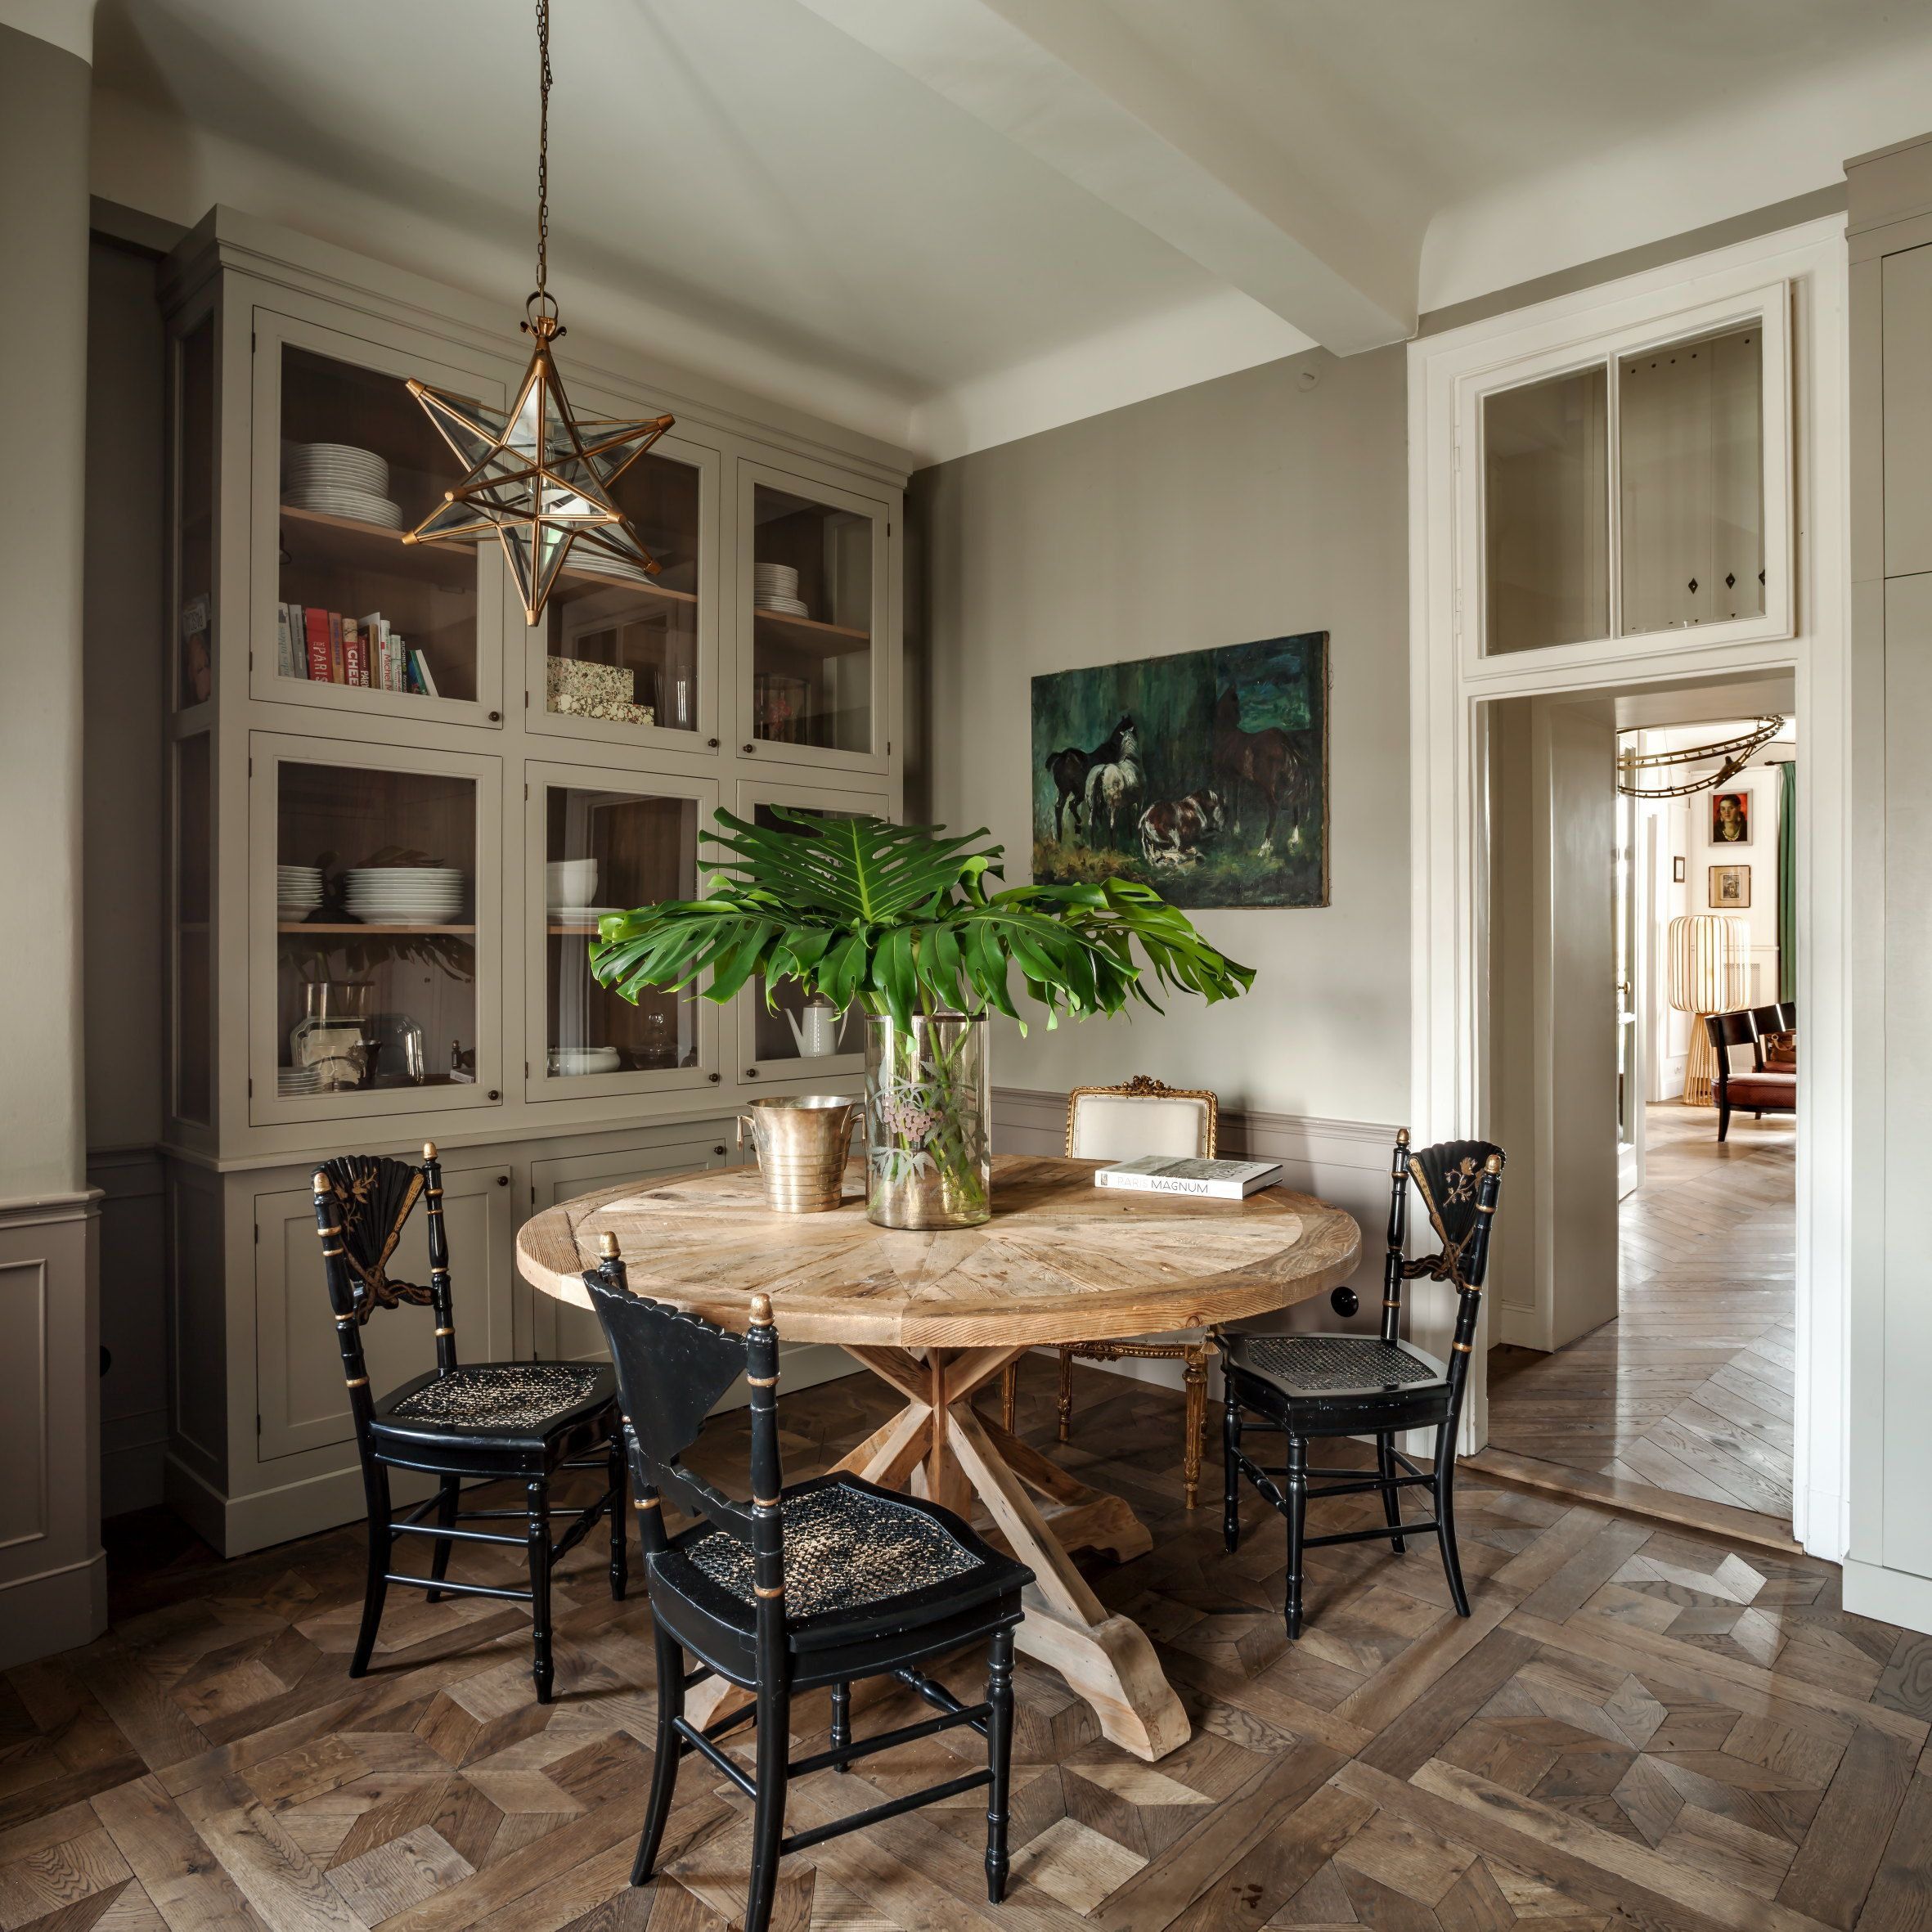 Kitchen And Dining Room Captivating Old Wood Table Colombe Design  Colombe Kitchens  Pinterest Decorating Inspiration